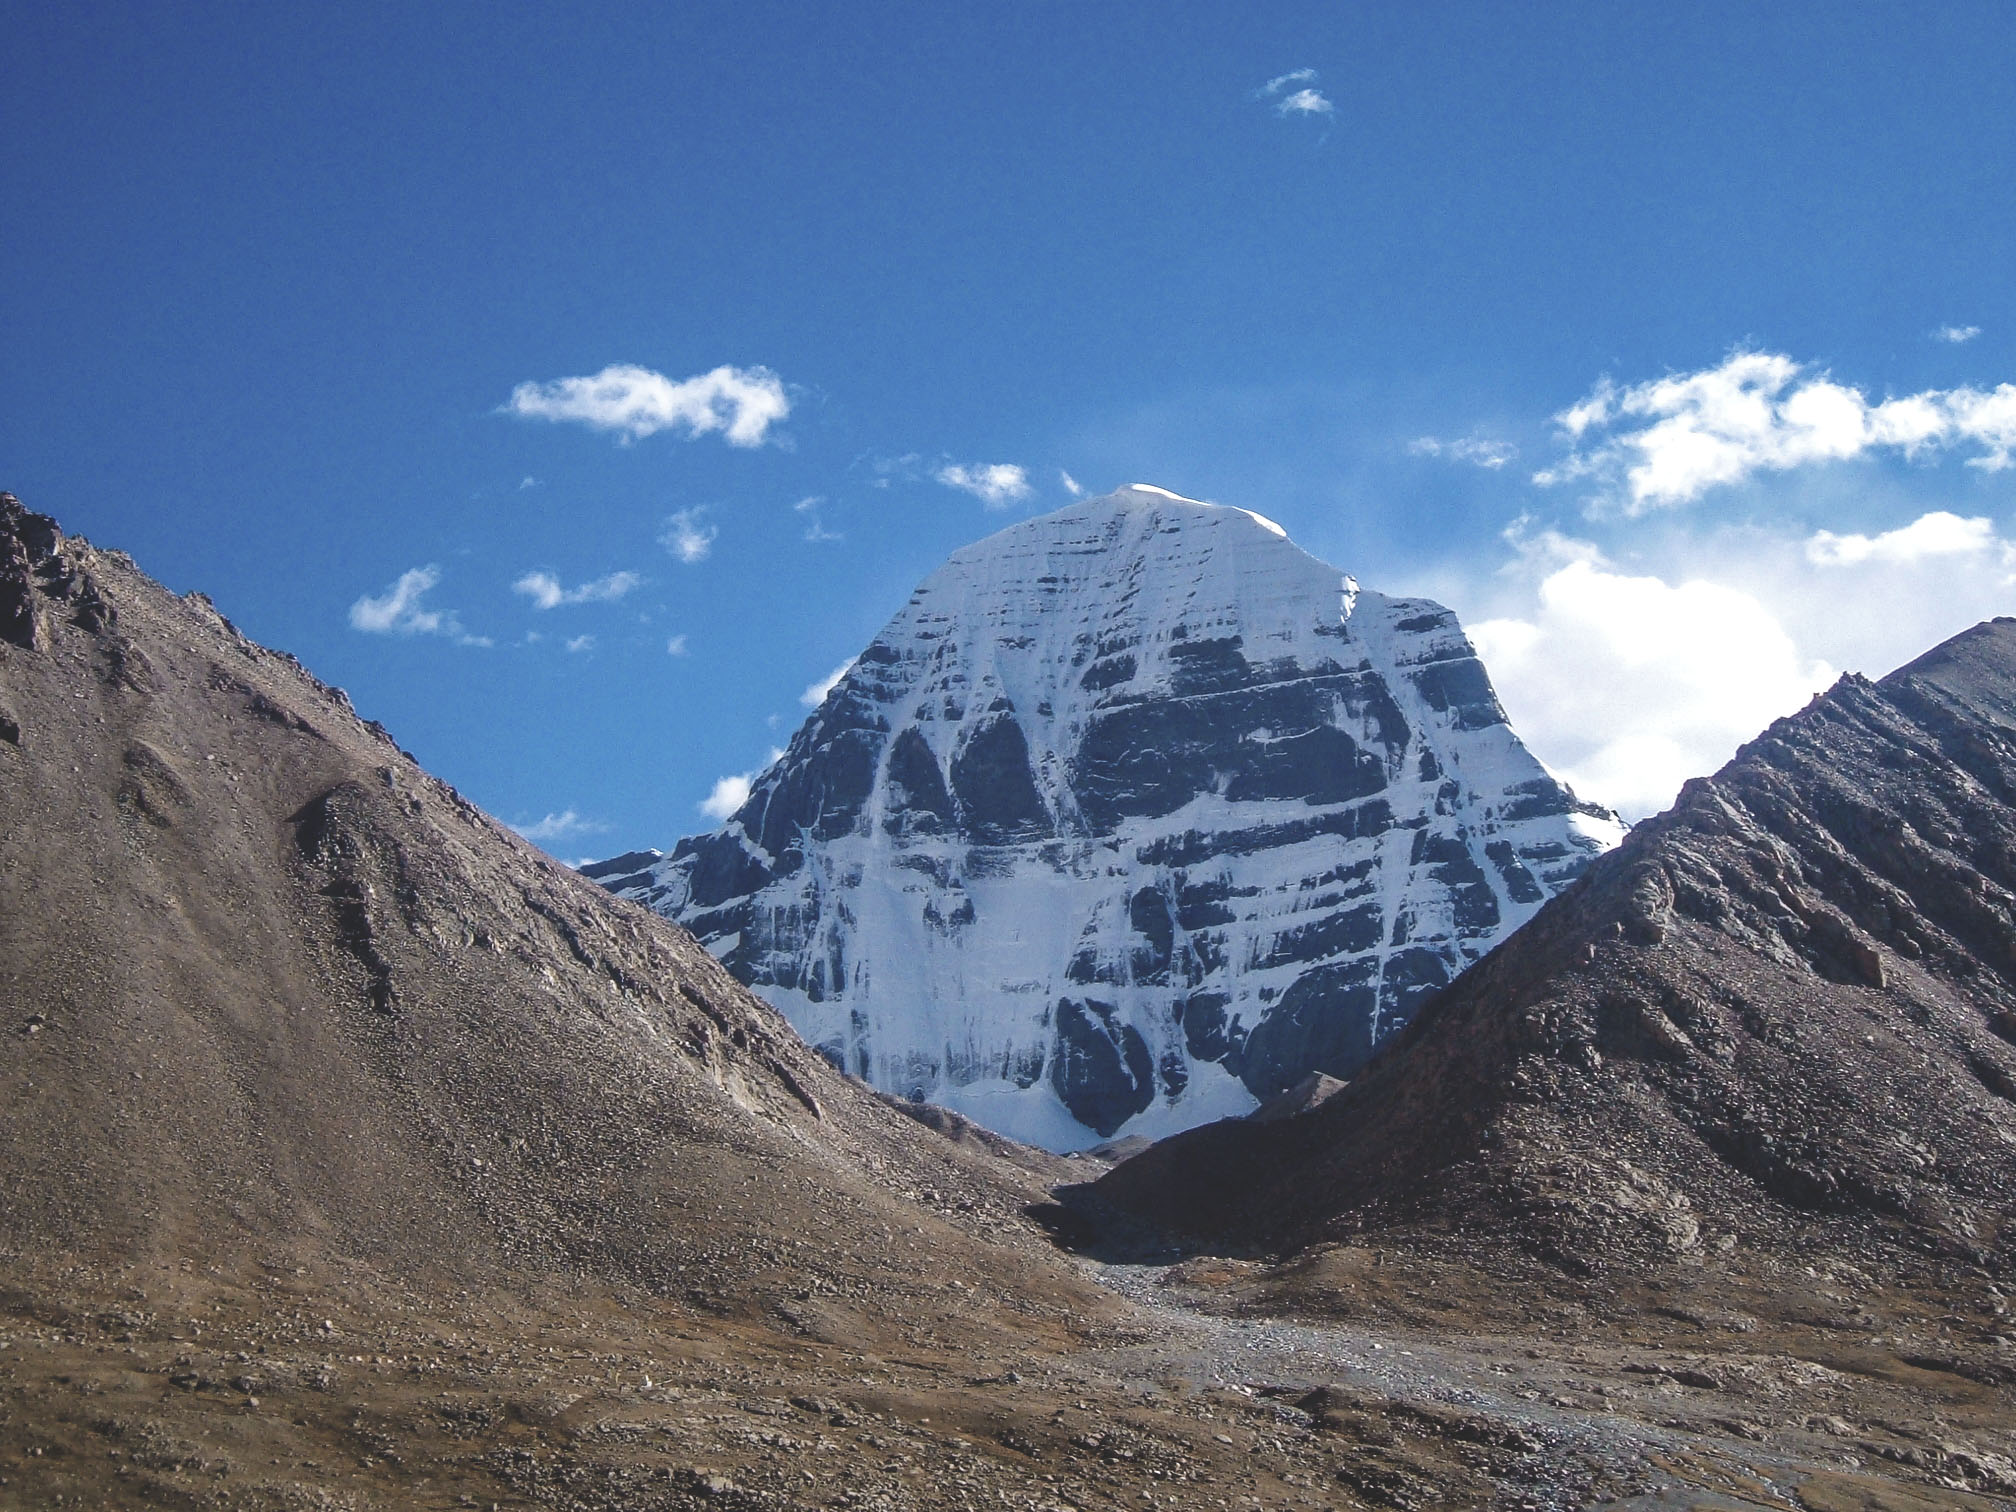 North face of Mt. Kailash